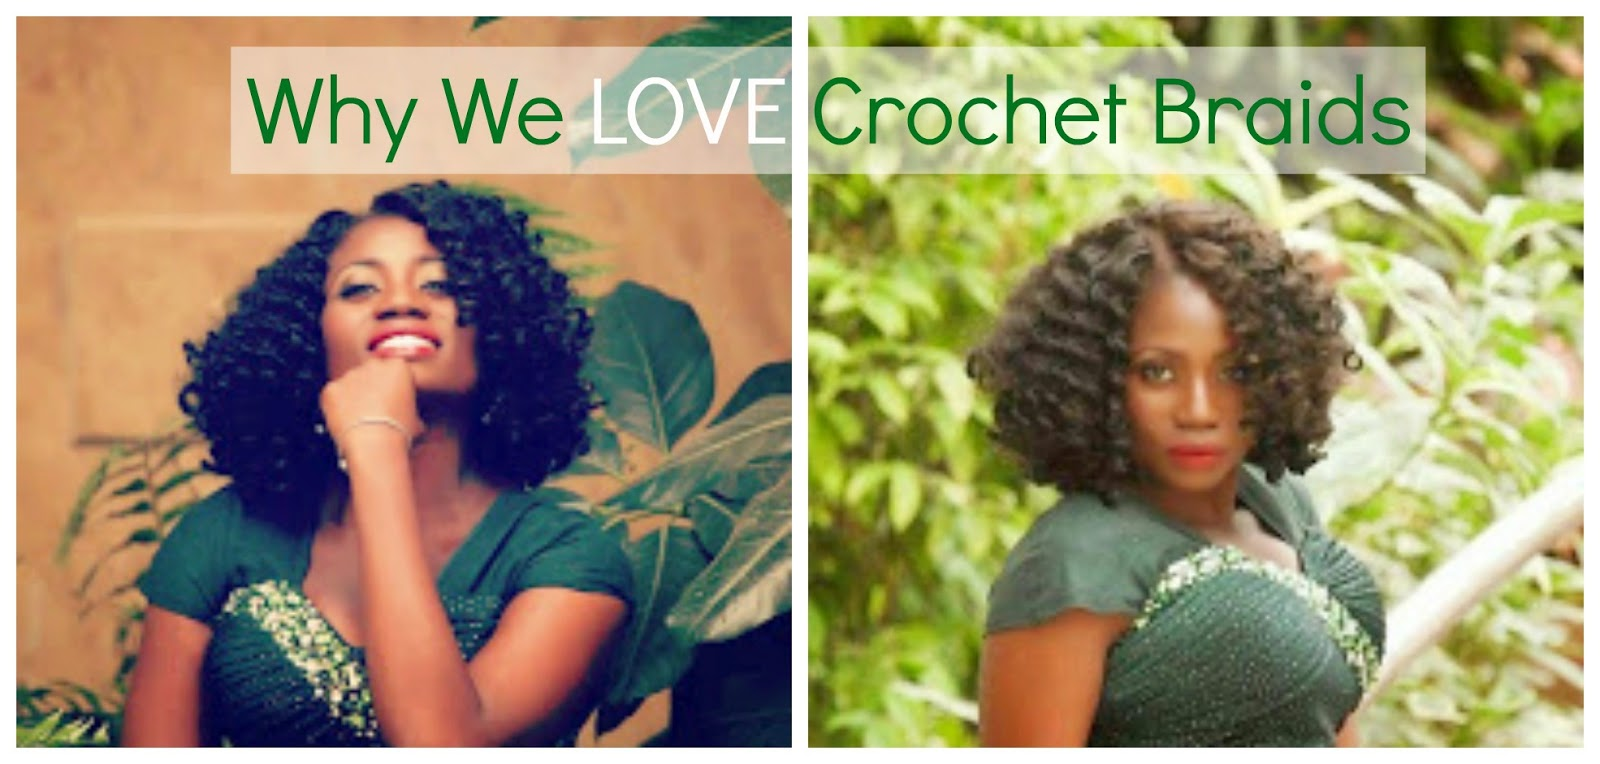 Why We LOVE Crochet Braids